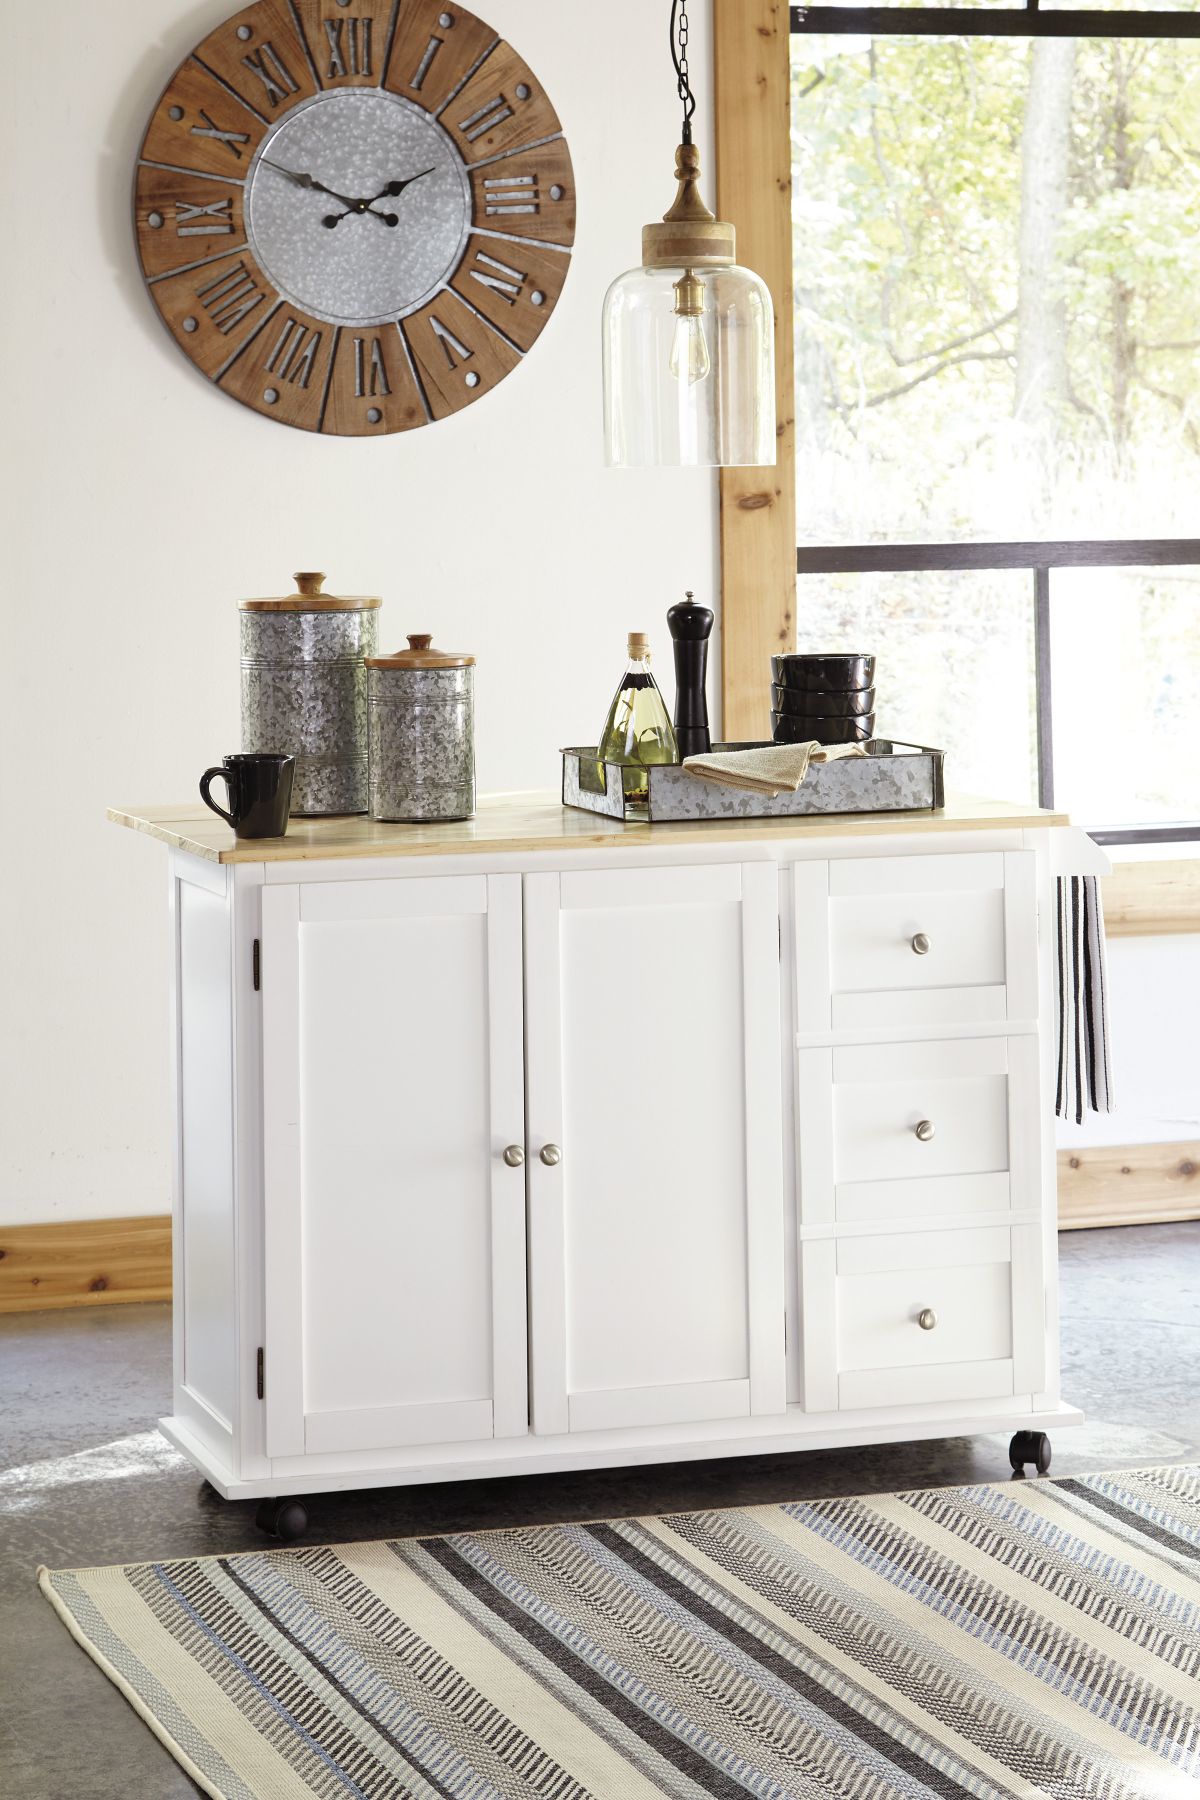 Picture of Withurst Kitchen Cart